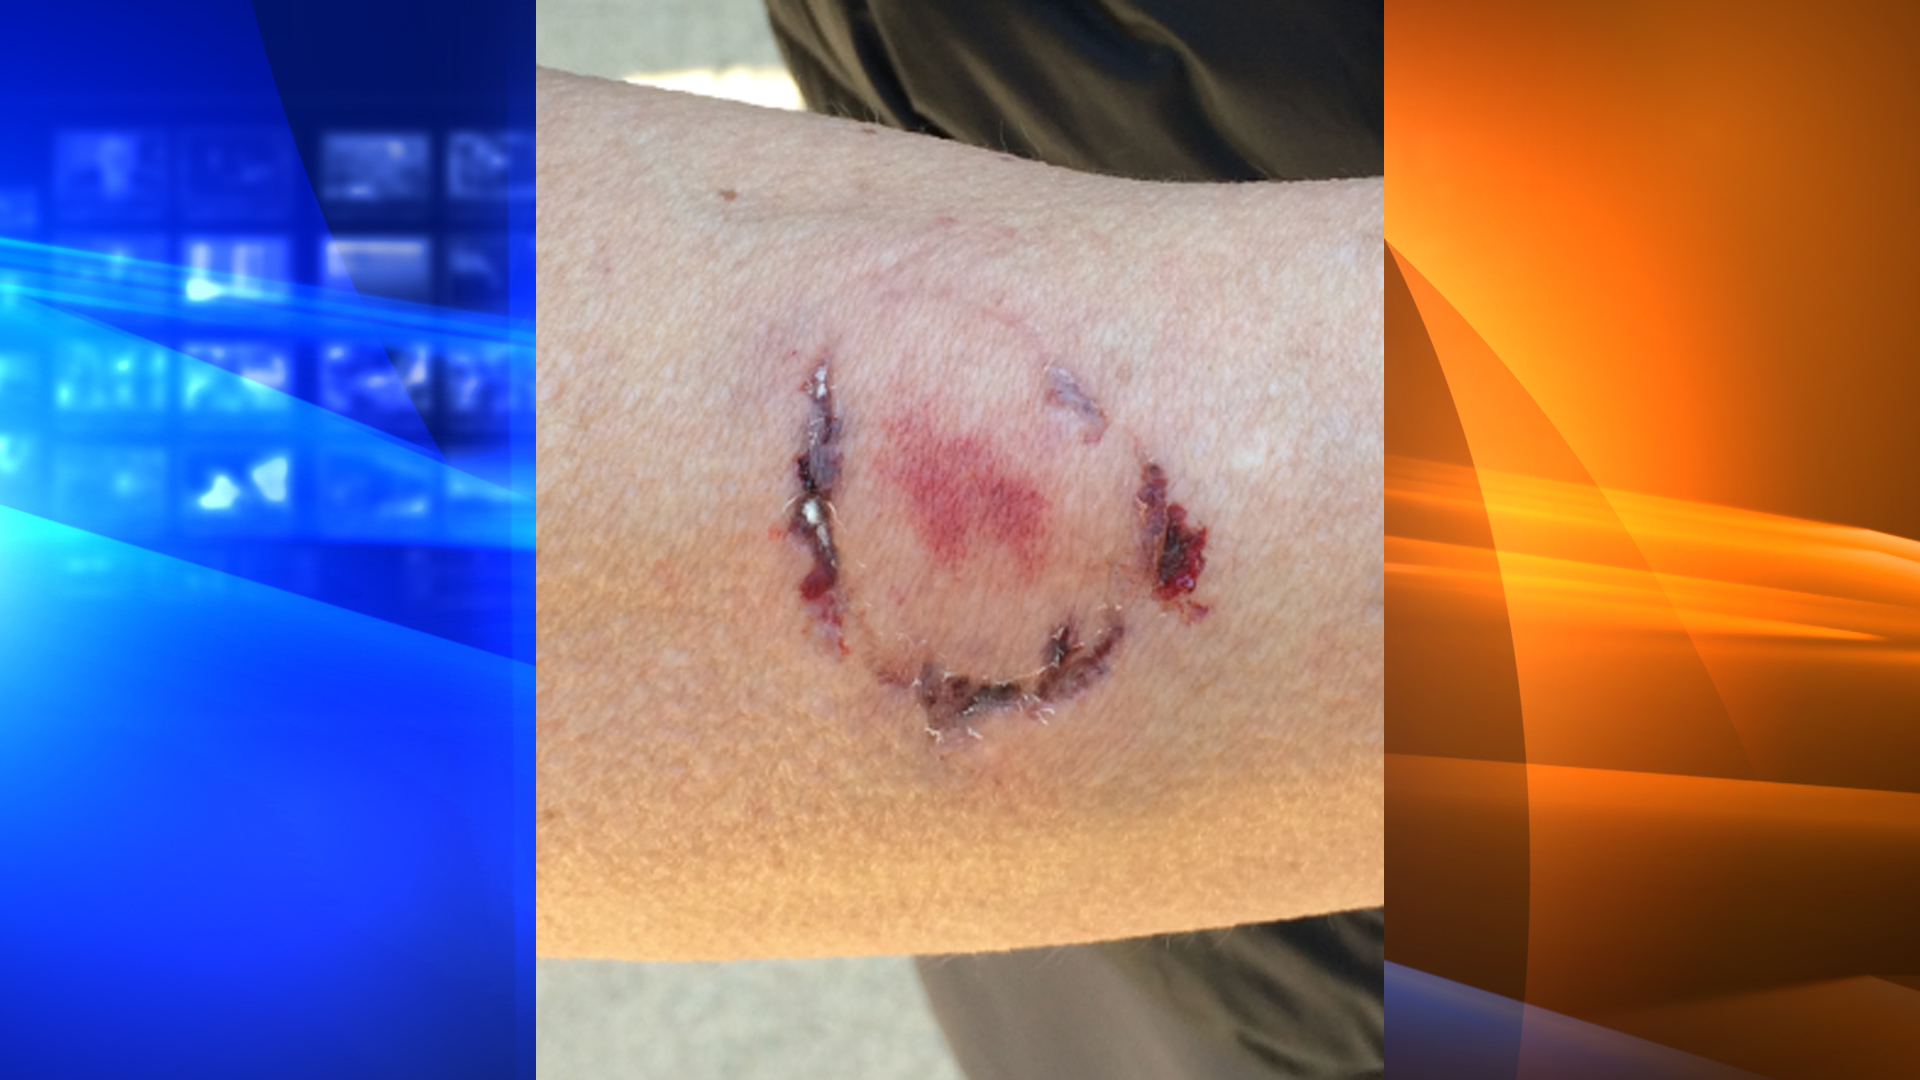 A woman was bitten by another woman after she sprayed the suspect's dog with pepper spray to fend of an attack at Anthony Chabot Regional Park in Castro Valley on Jan. 3, 2019. (Credit: East Bay Regional Park District Police Department)